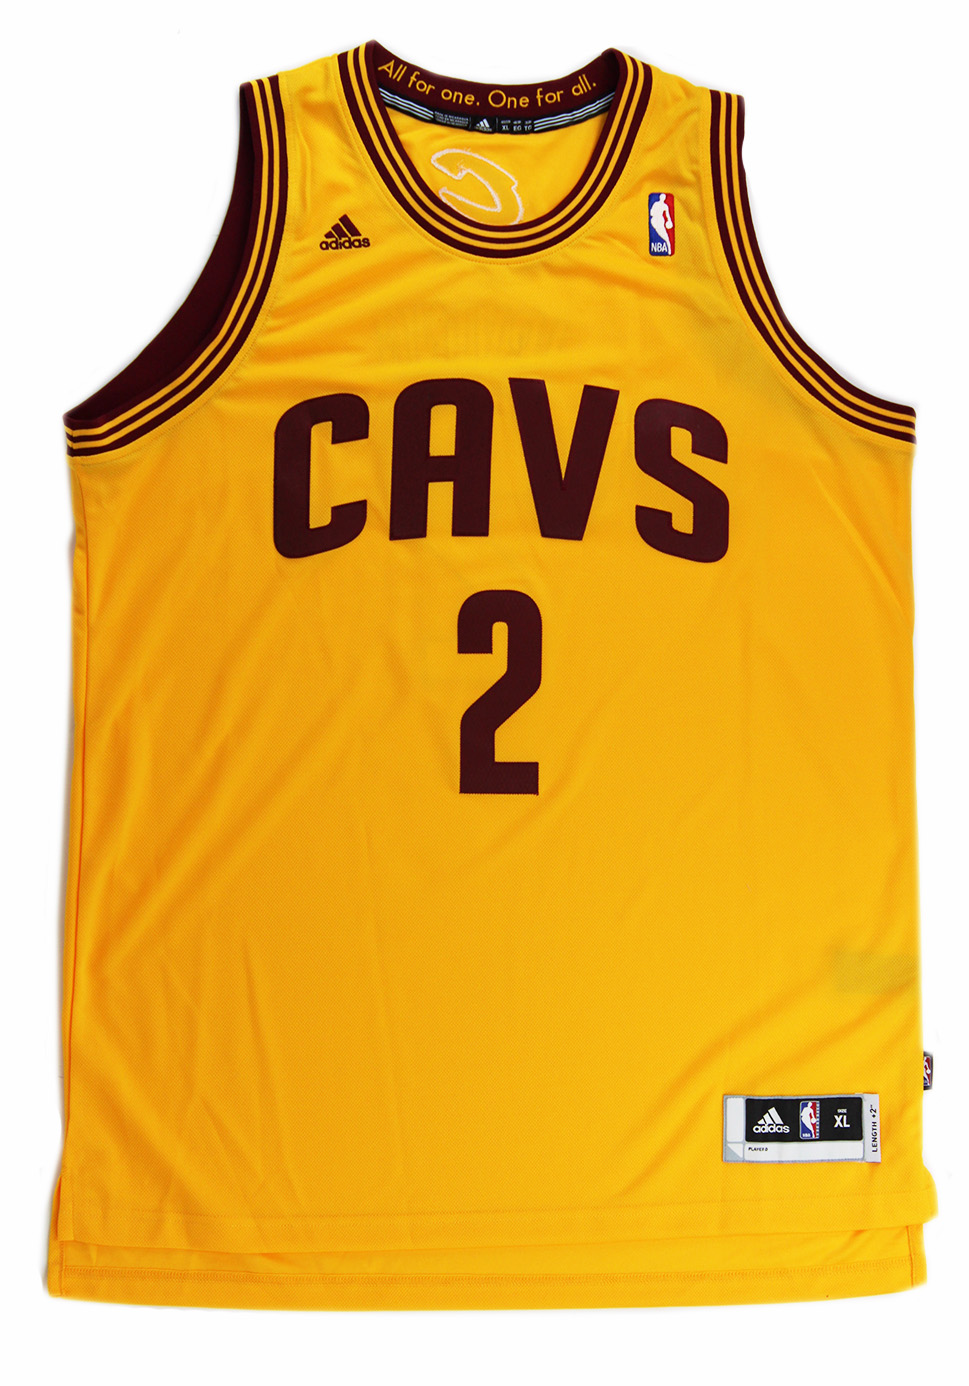 ebe795a497ba4 Kyrie Irving Signed Cleveland Cavaliers Adidas Swingman Yellow NBA Jersey -  Panini-17267 ...